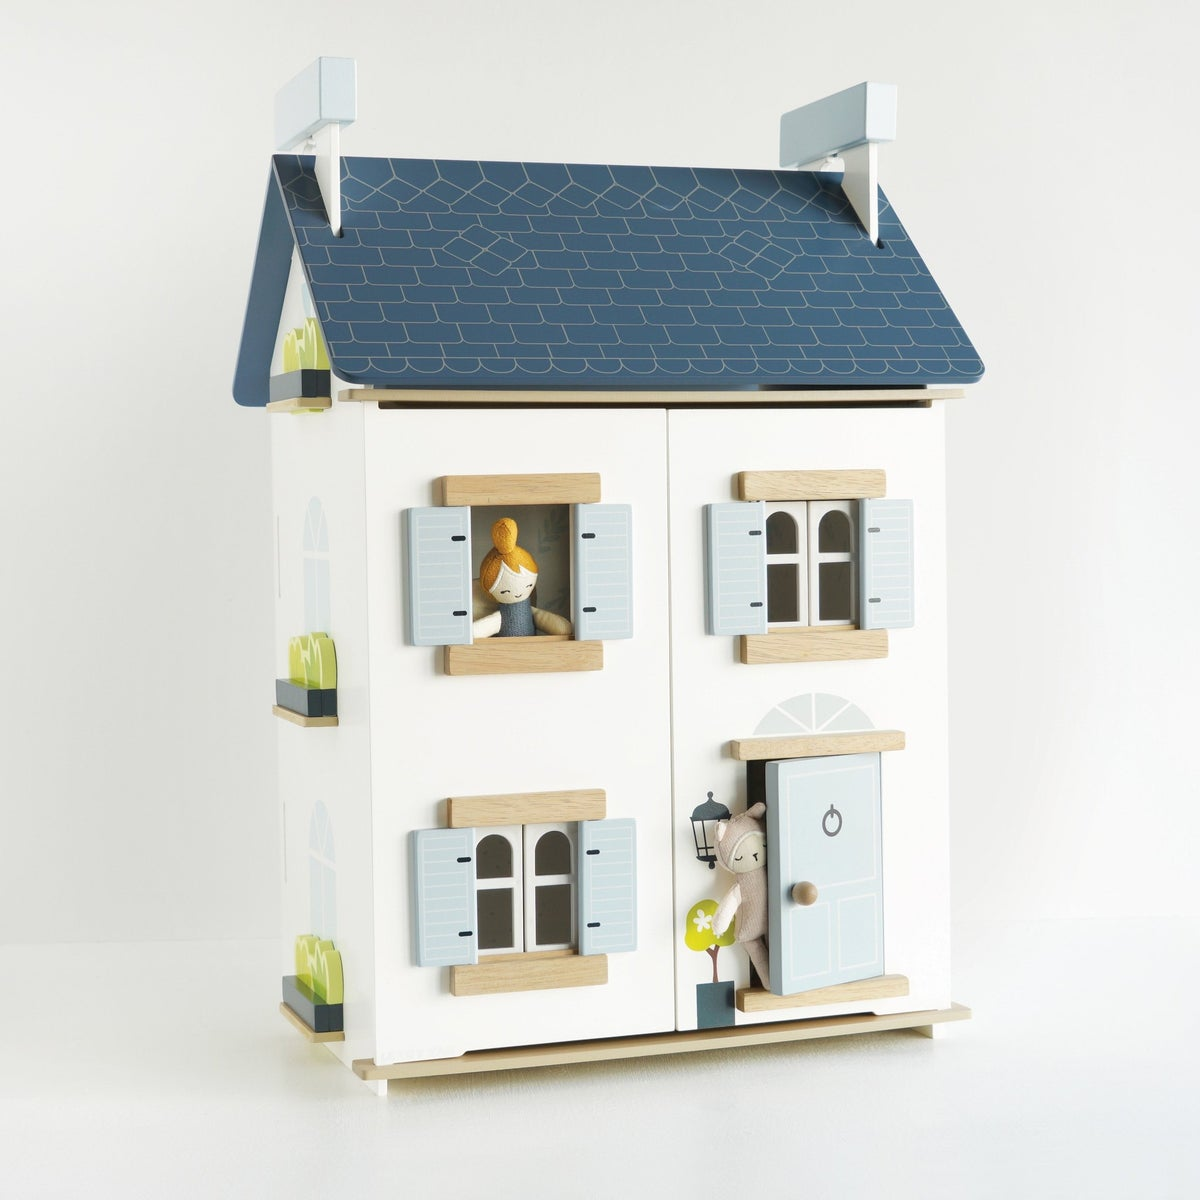 Image of Sky Doll House